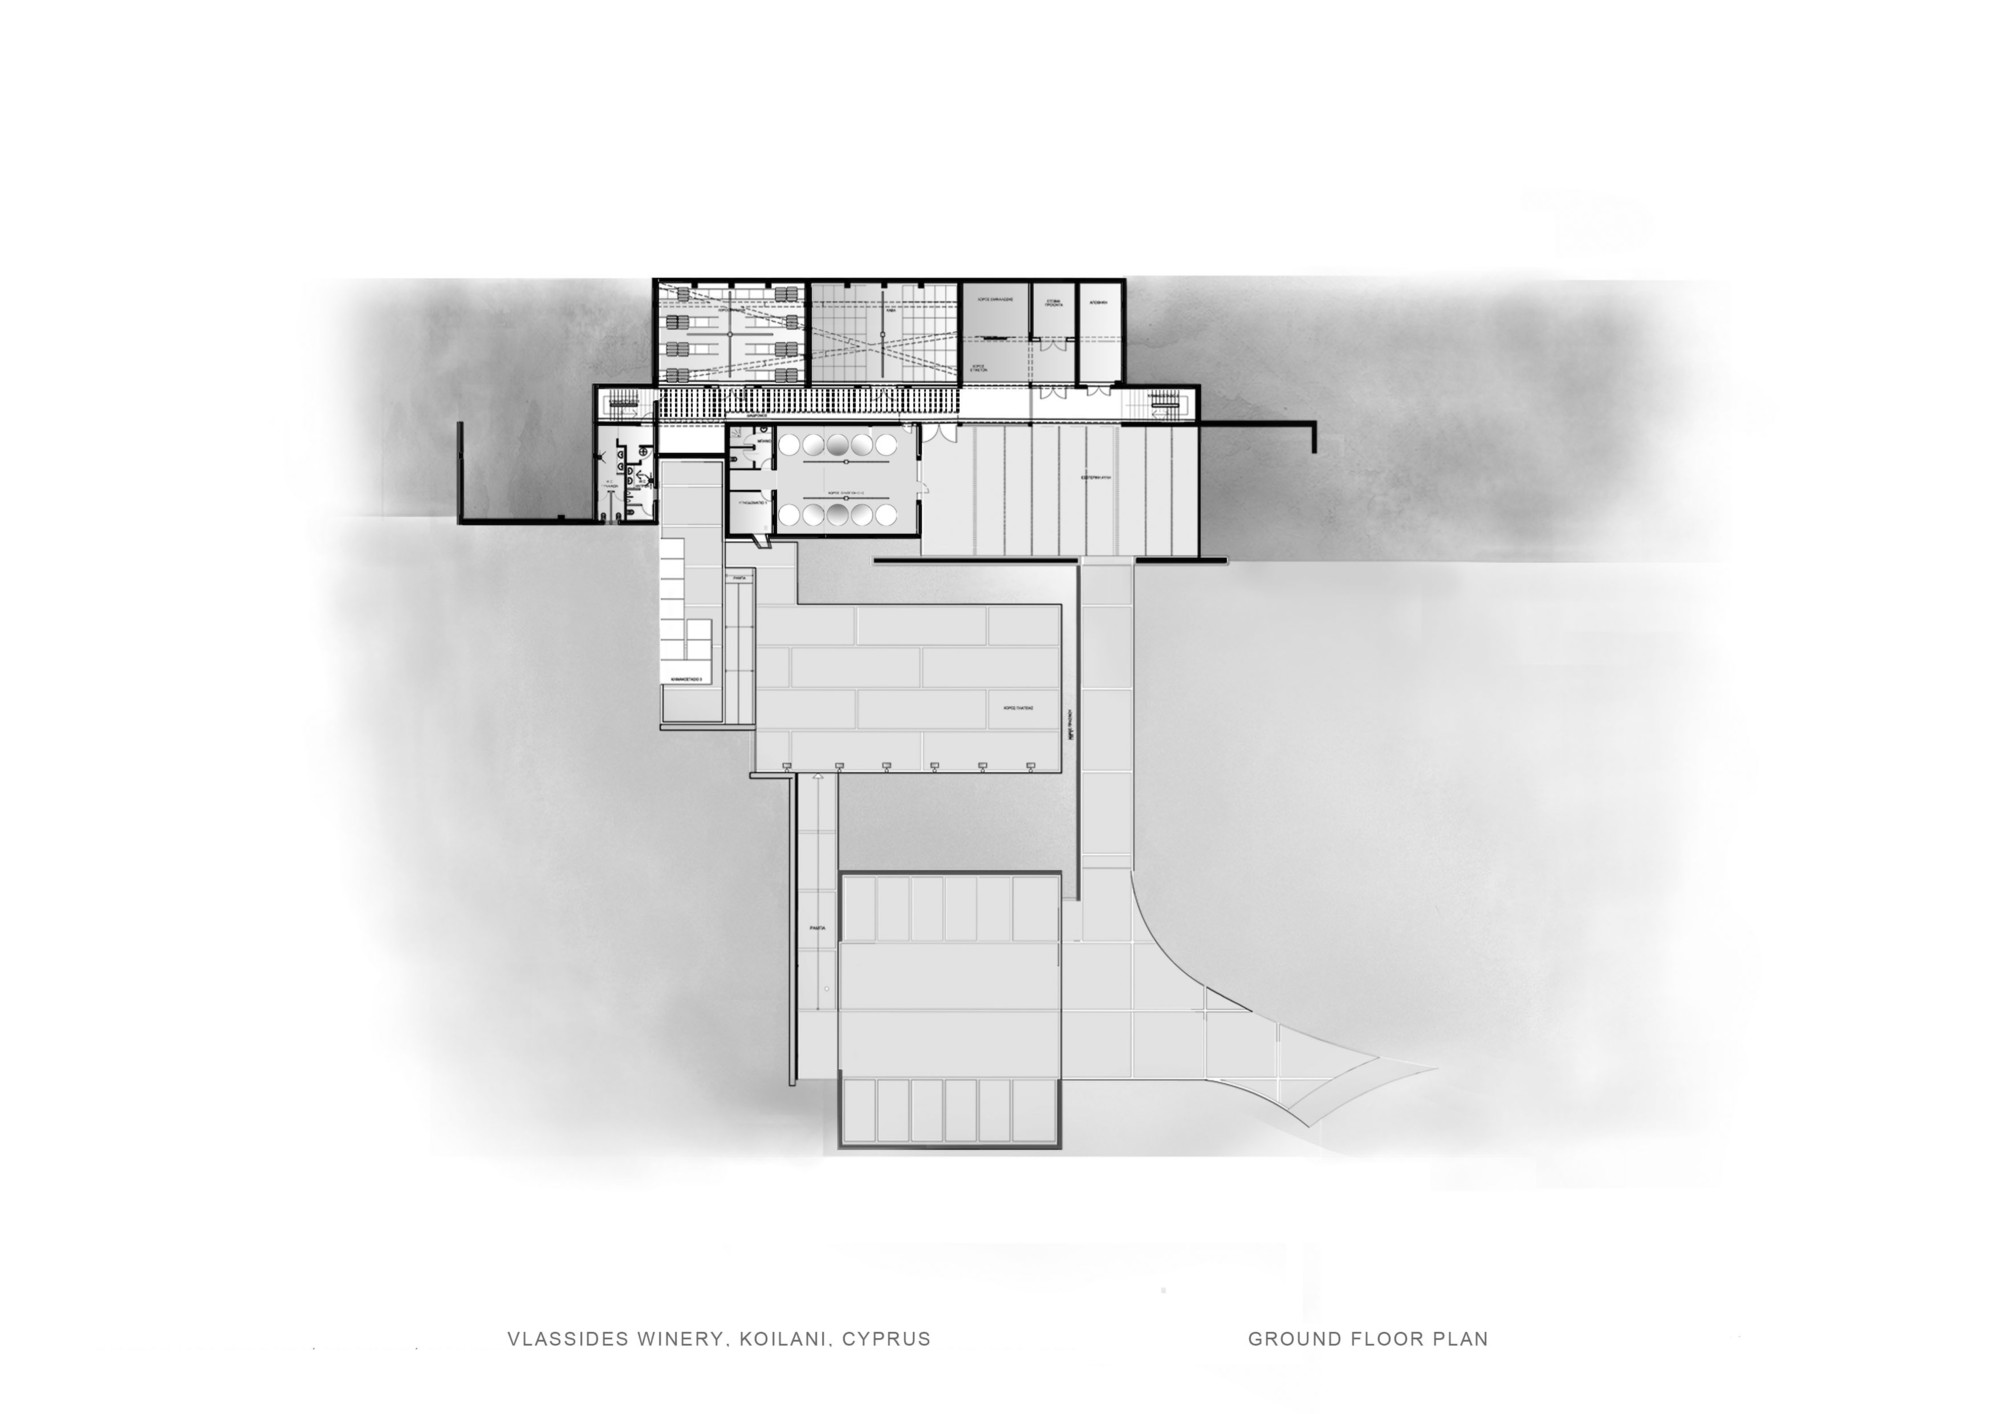 Gallery of vlassides winery eraclis papachristou for Winery floor plans by architects